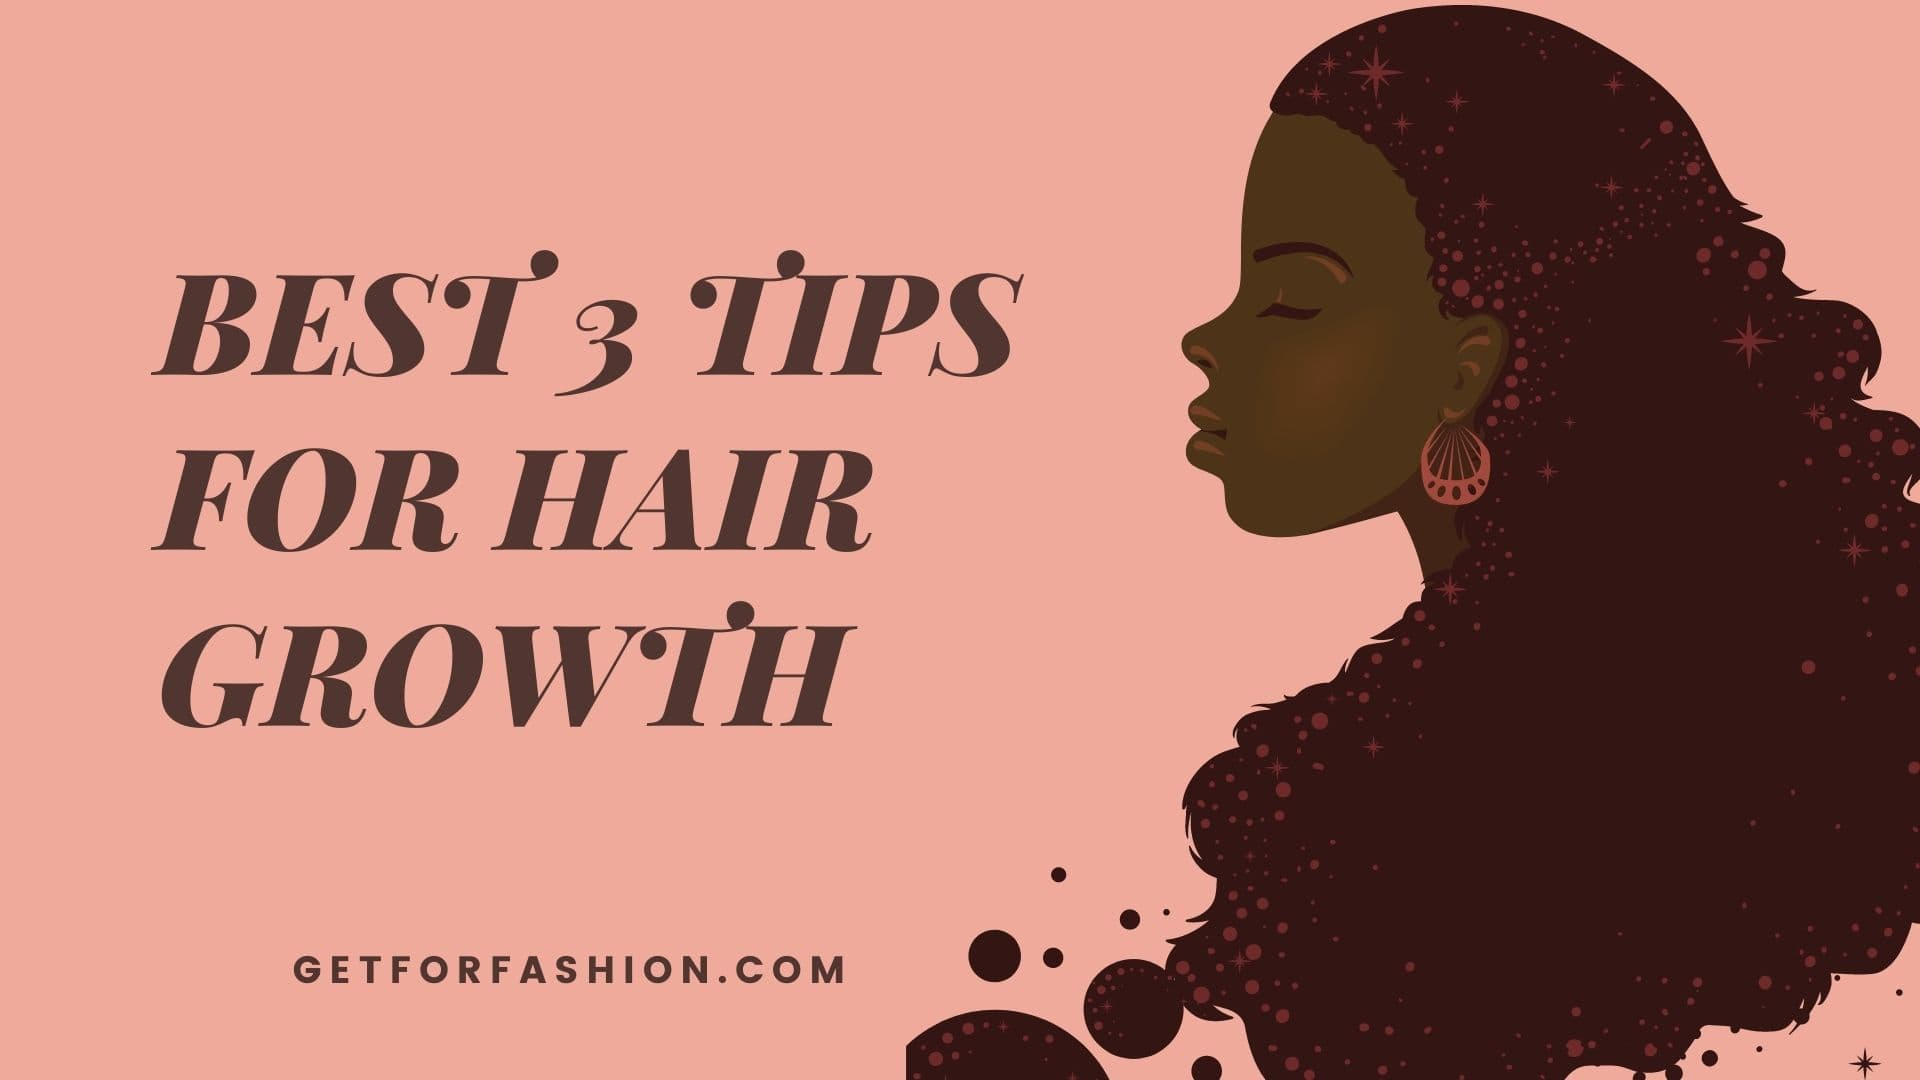 Best 3 Tips For Hair Growth